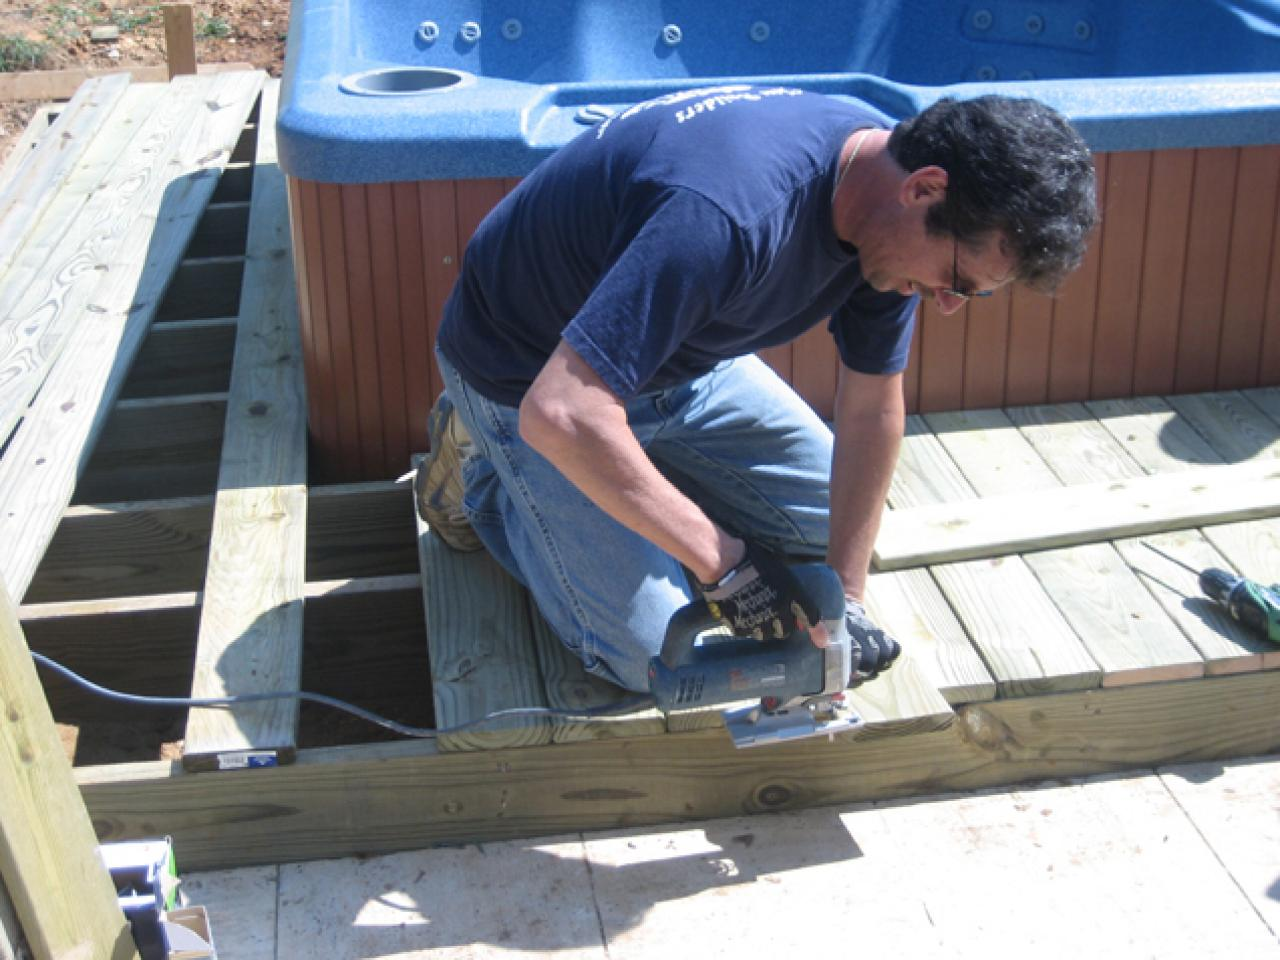 How To Install a Hot Tub On A Deck | how-tos | DIY